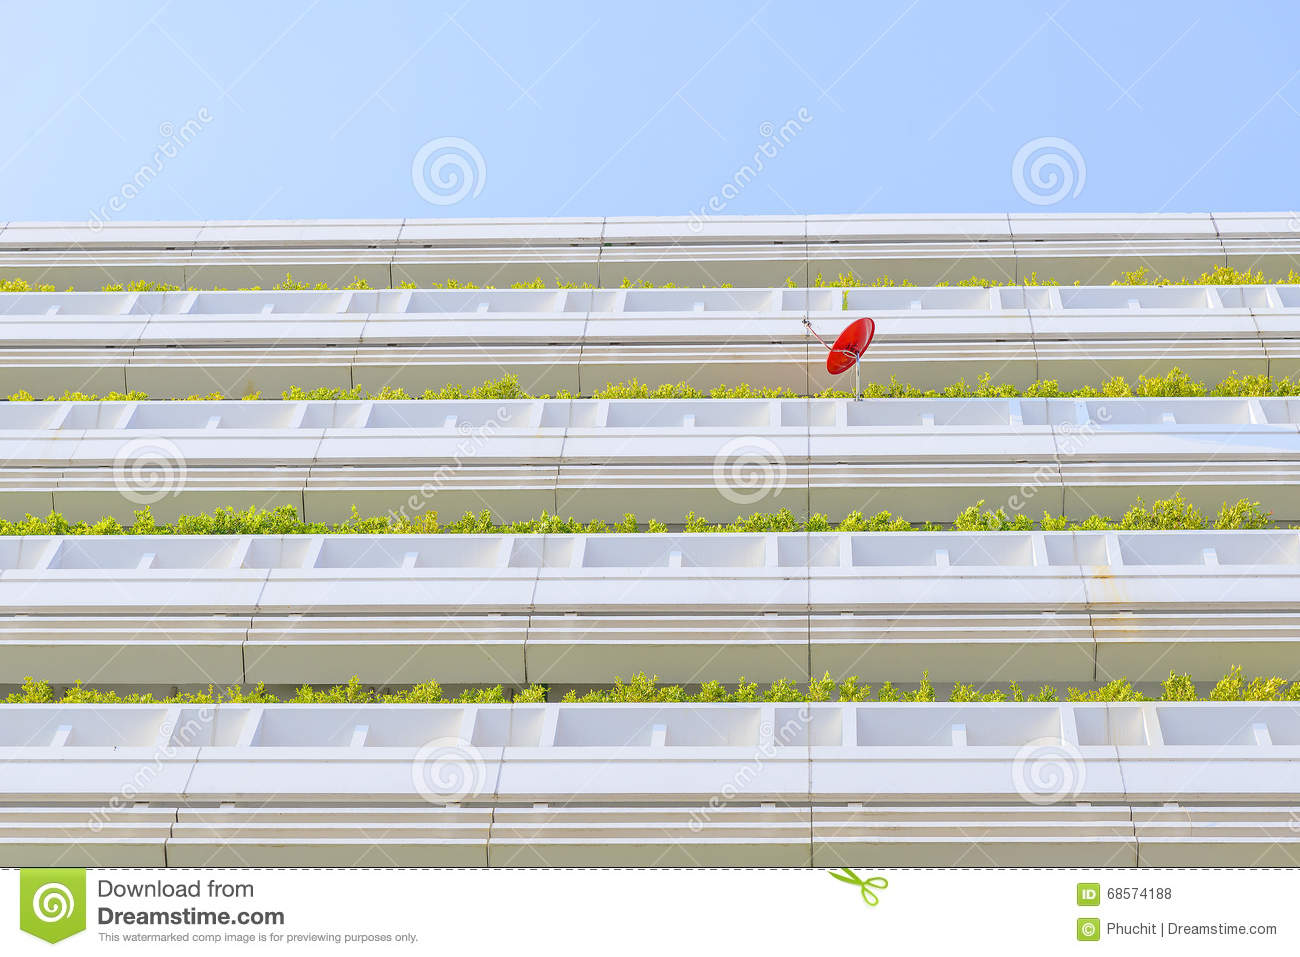 Balcony garden of the building stock photo image 68574188 for Balcony underside